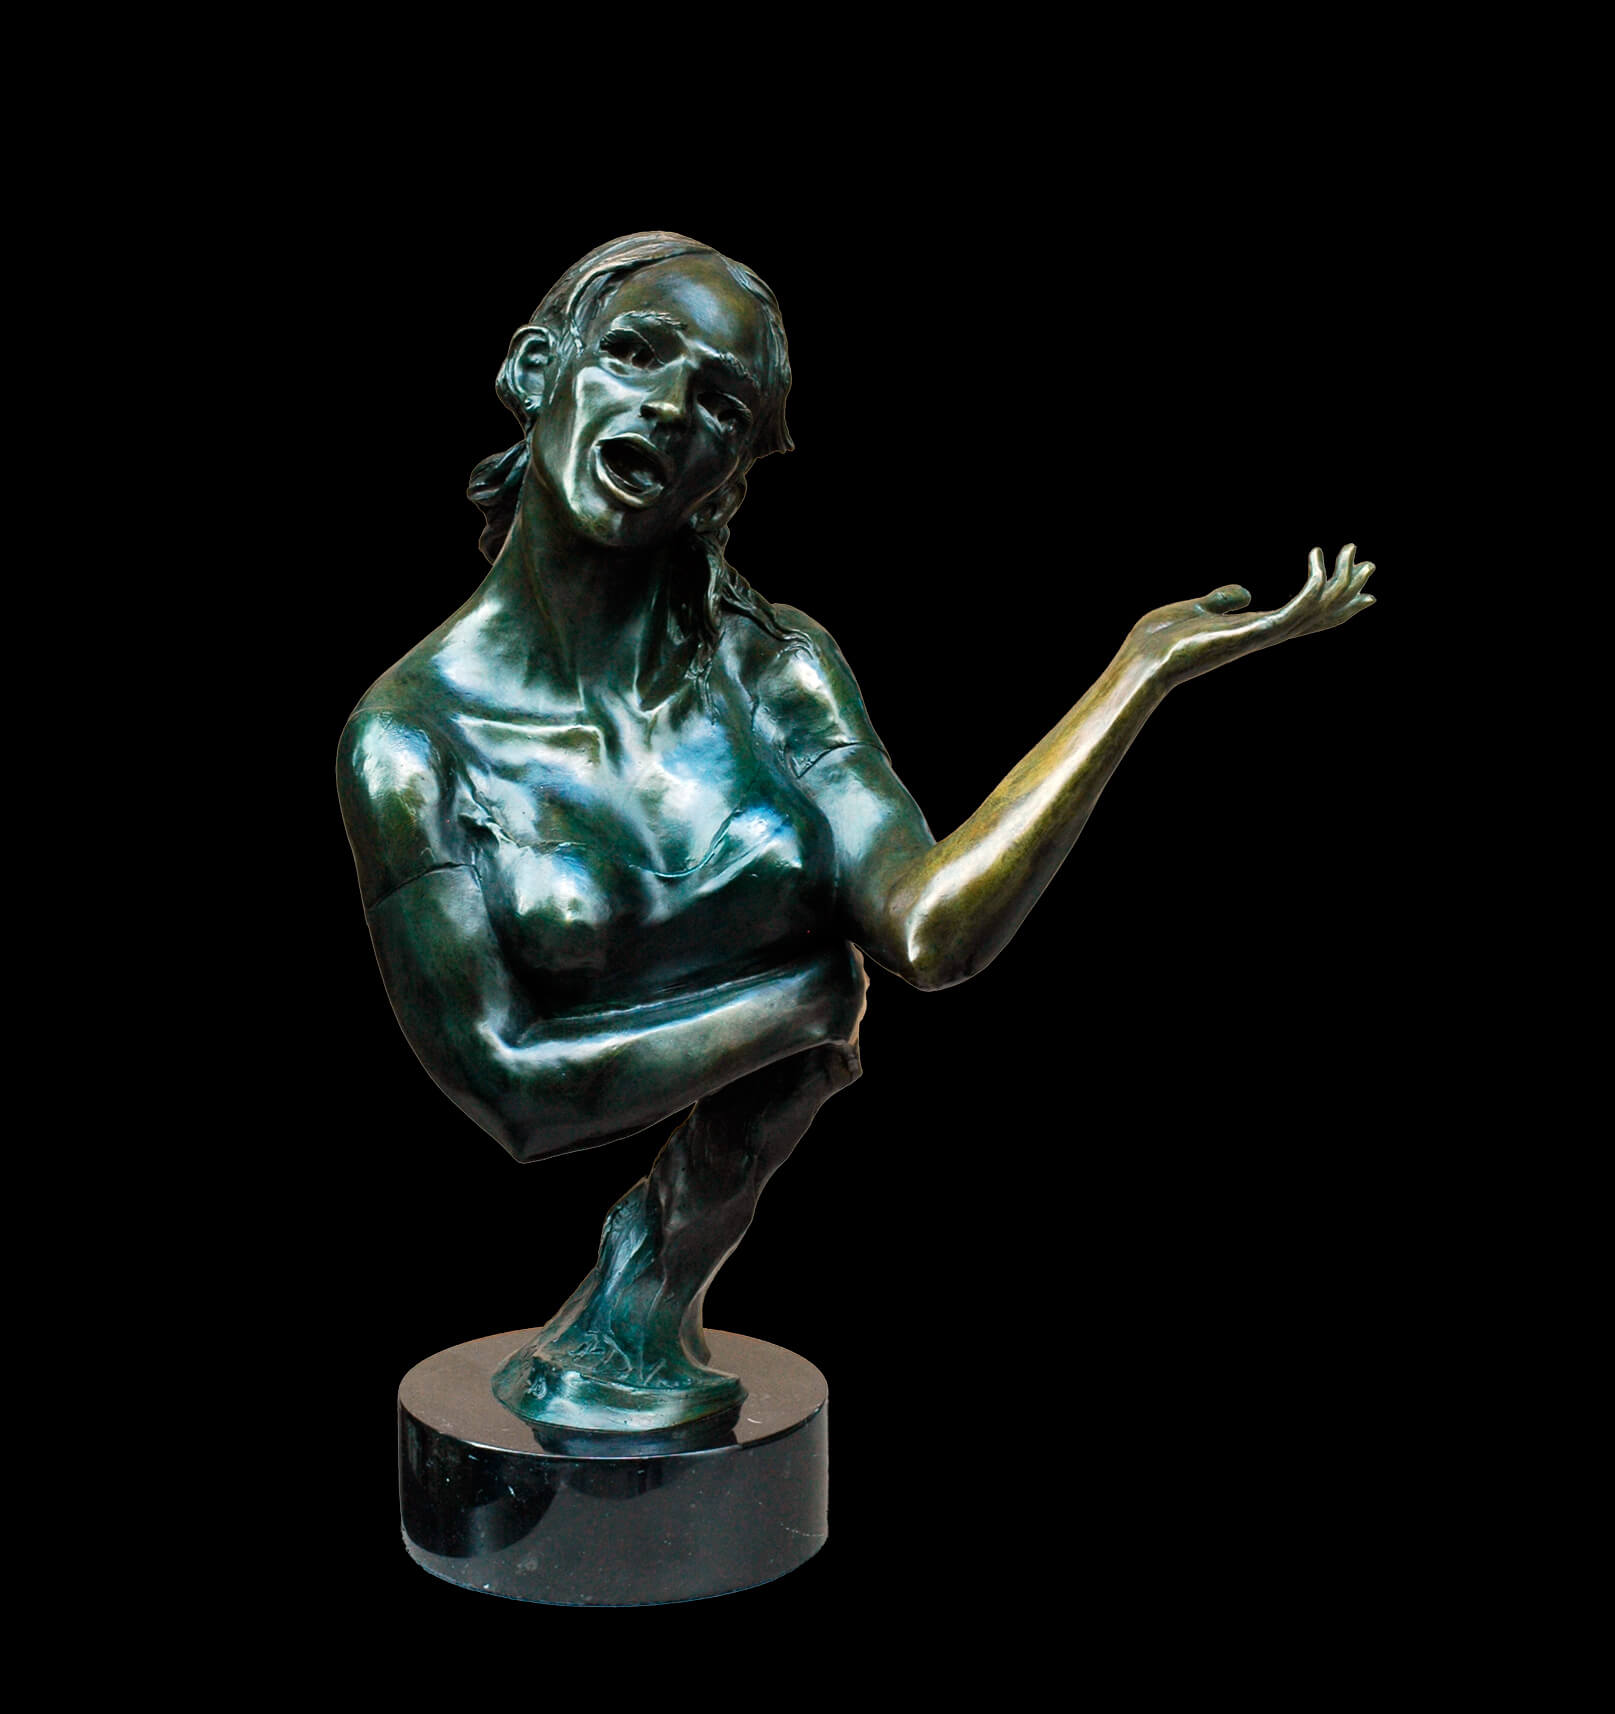 The Singer a female singer bronze figurative sculpture by Andrew DeVries